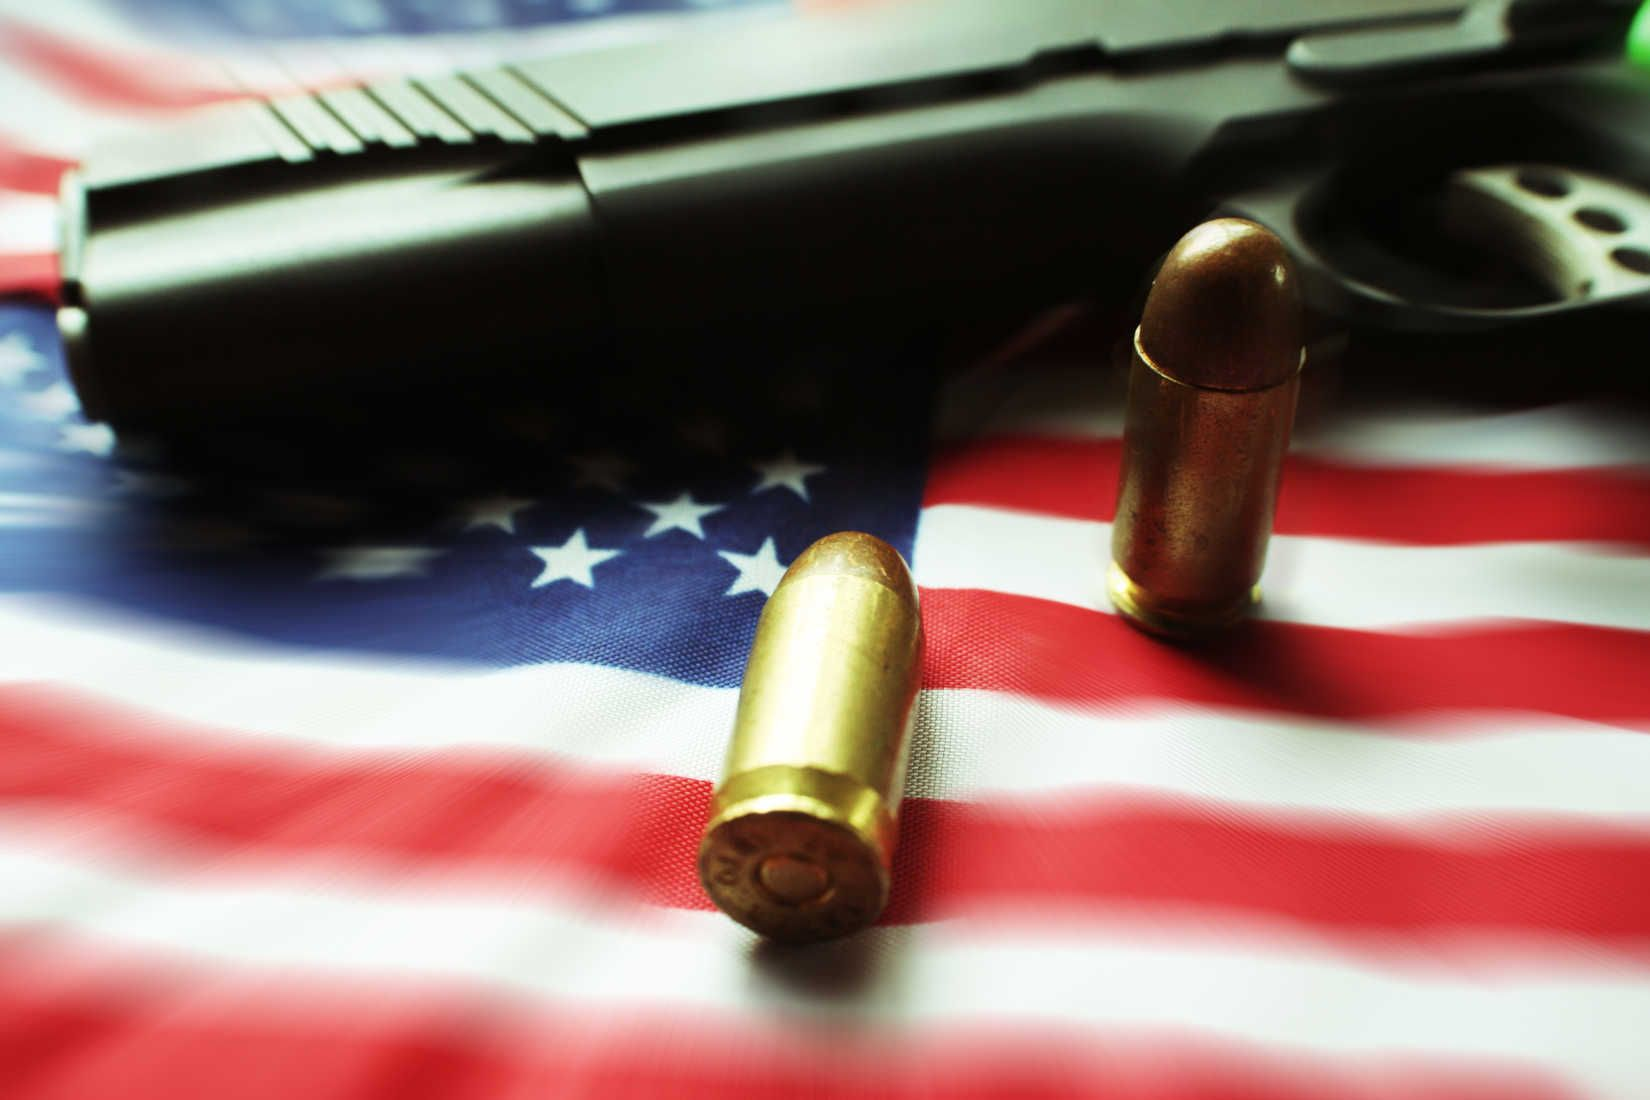 GALLUP: Gun Control Not a Priority for Americans